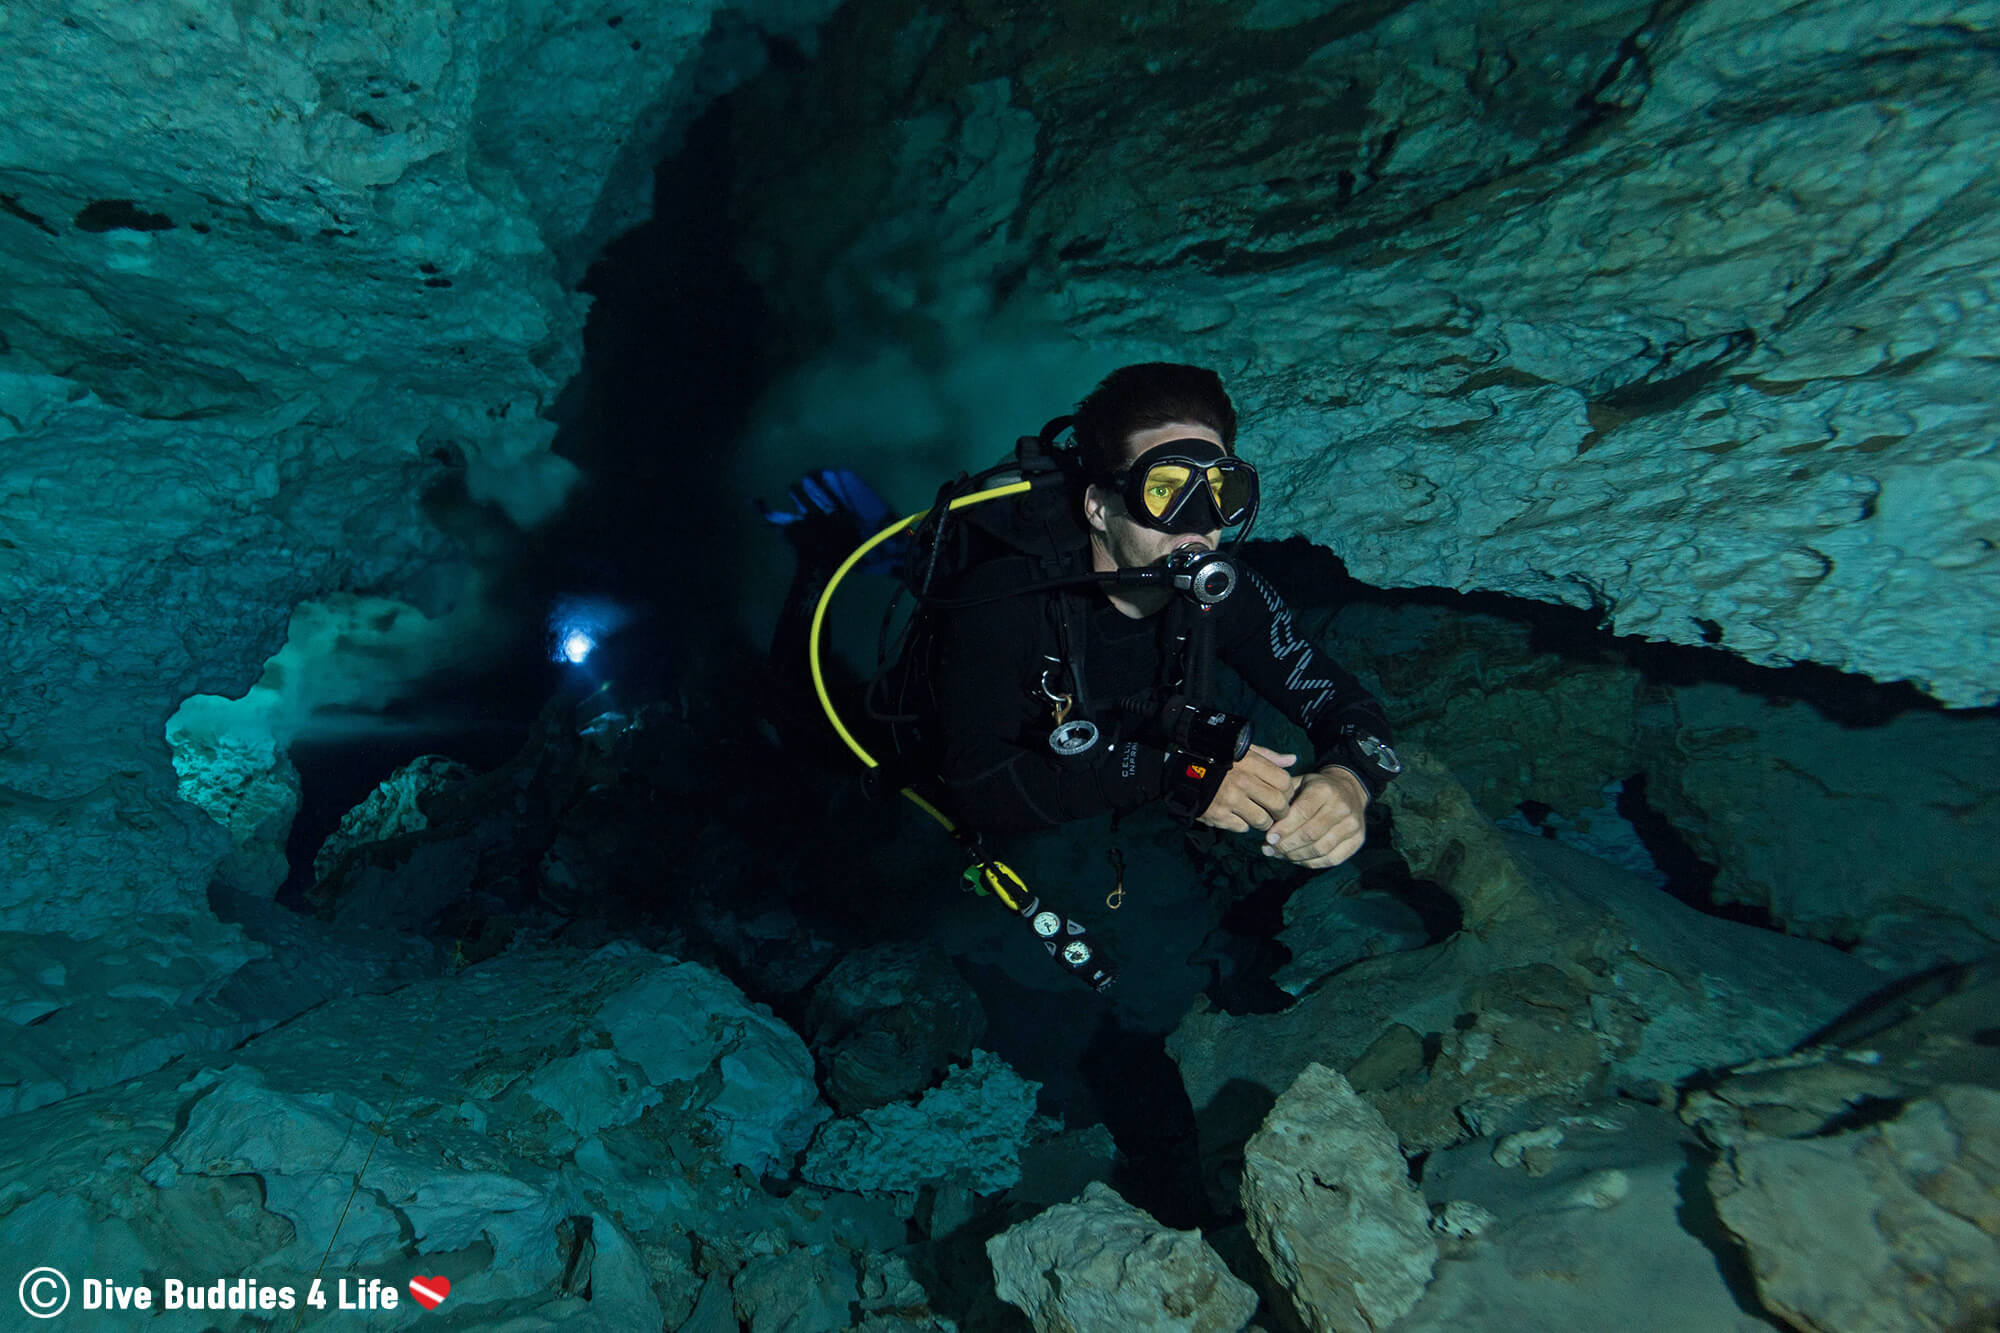 Joey Diving Through The Halocline In The Temple Of Doom Cenote, Tulum, Mexico